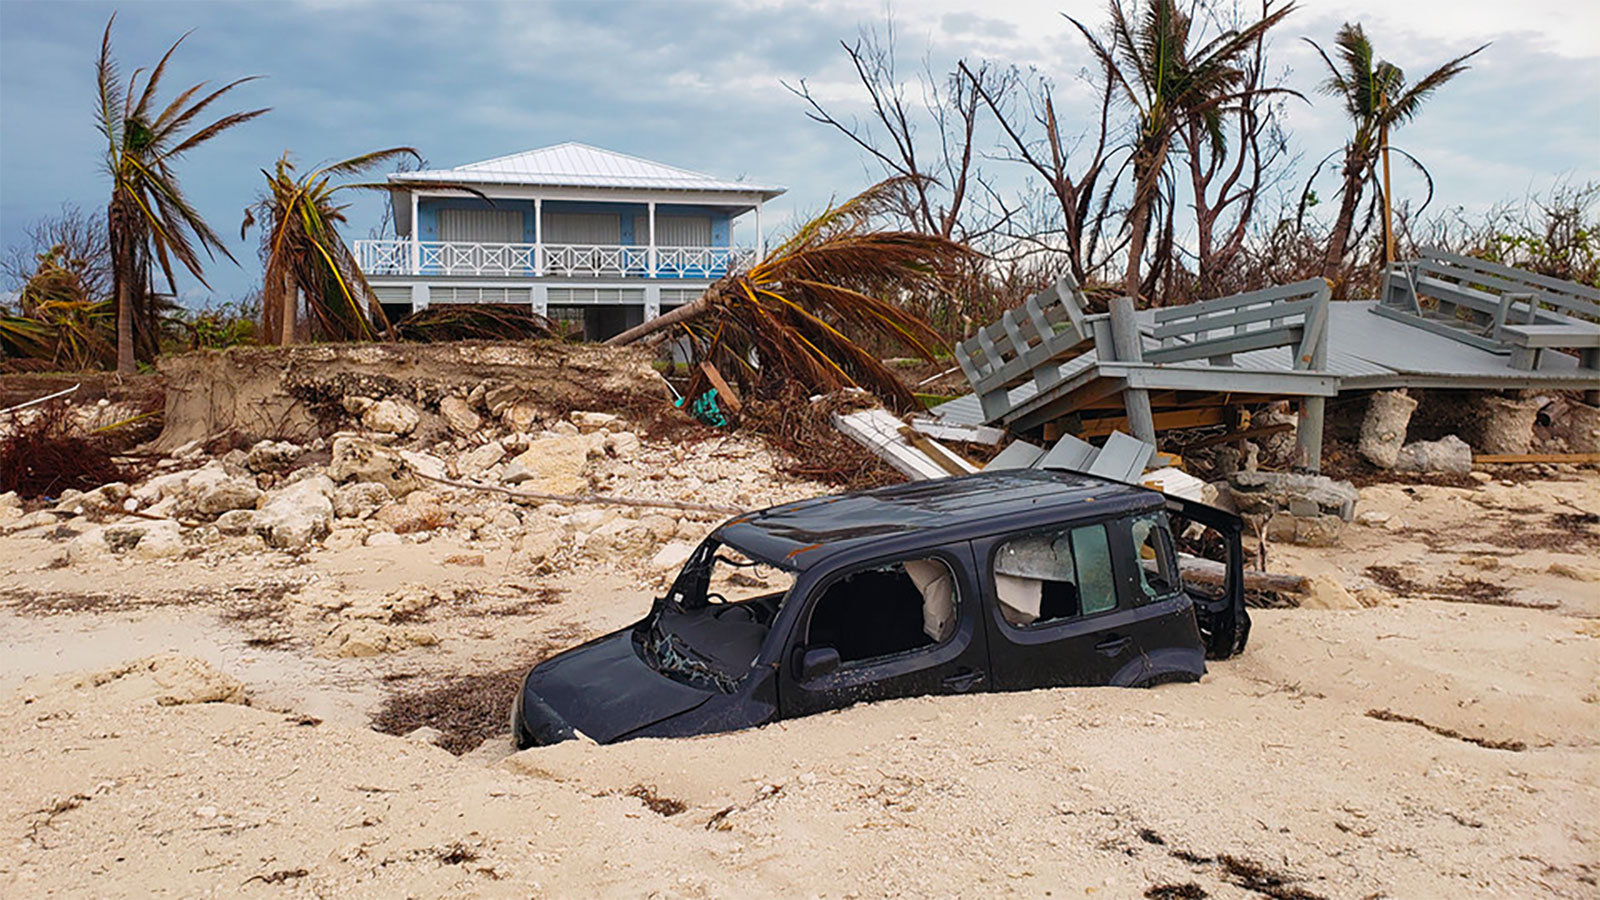 Some structures remained standing amid the devastation caused by Hurricane Dorian when it hit the Bahamas in early September. Nebraska engineering professor Richard L. Wood recently visited the islands to gather data to help understand why. Photo taken at Golden Grove, East Grand Bahama.